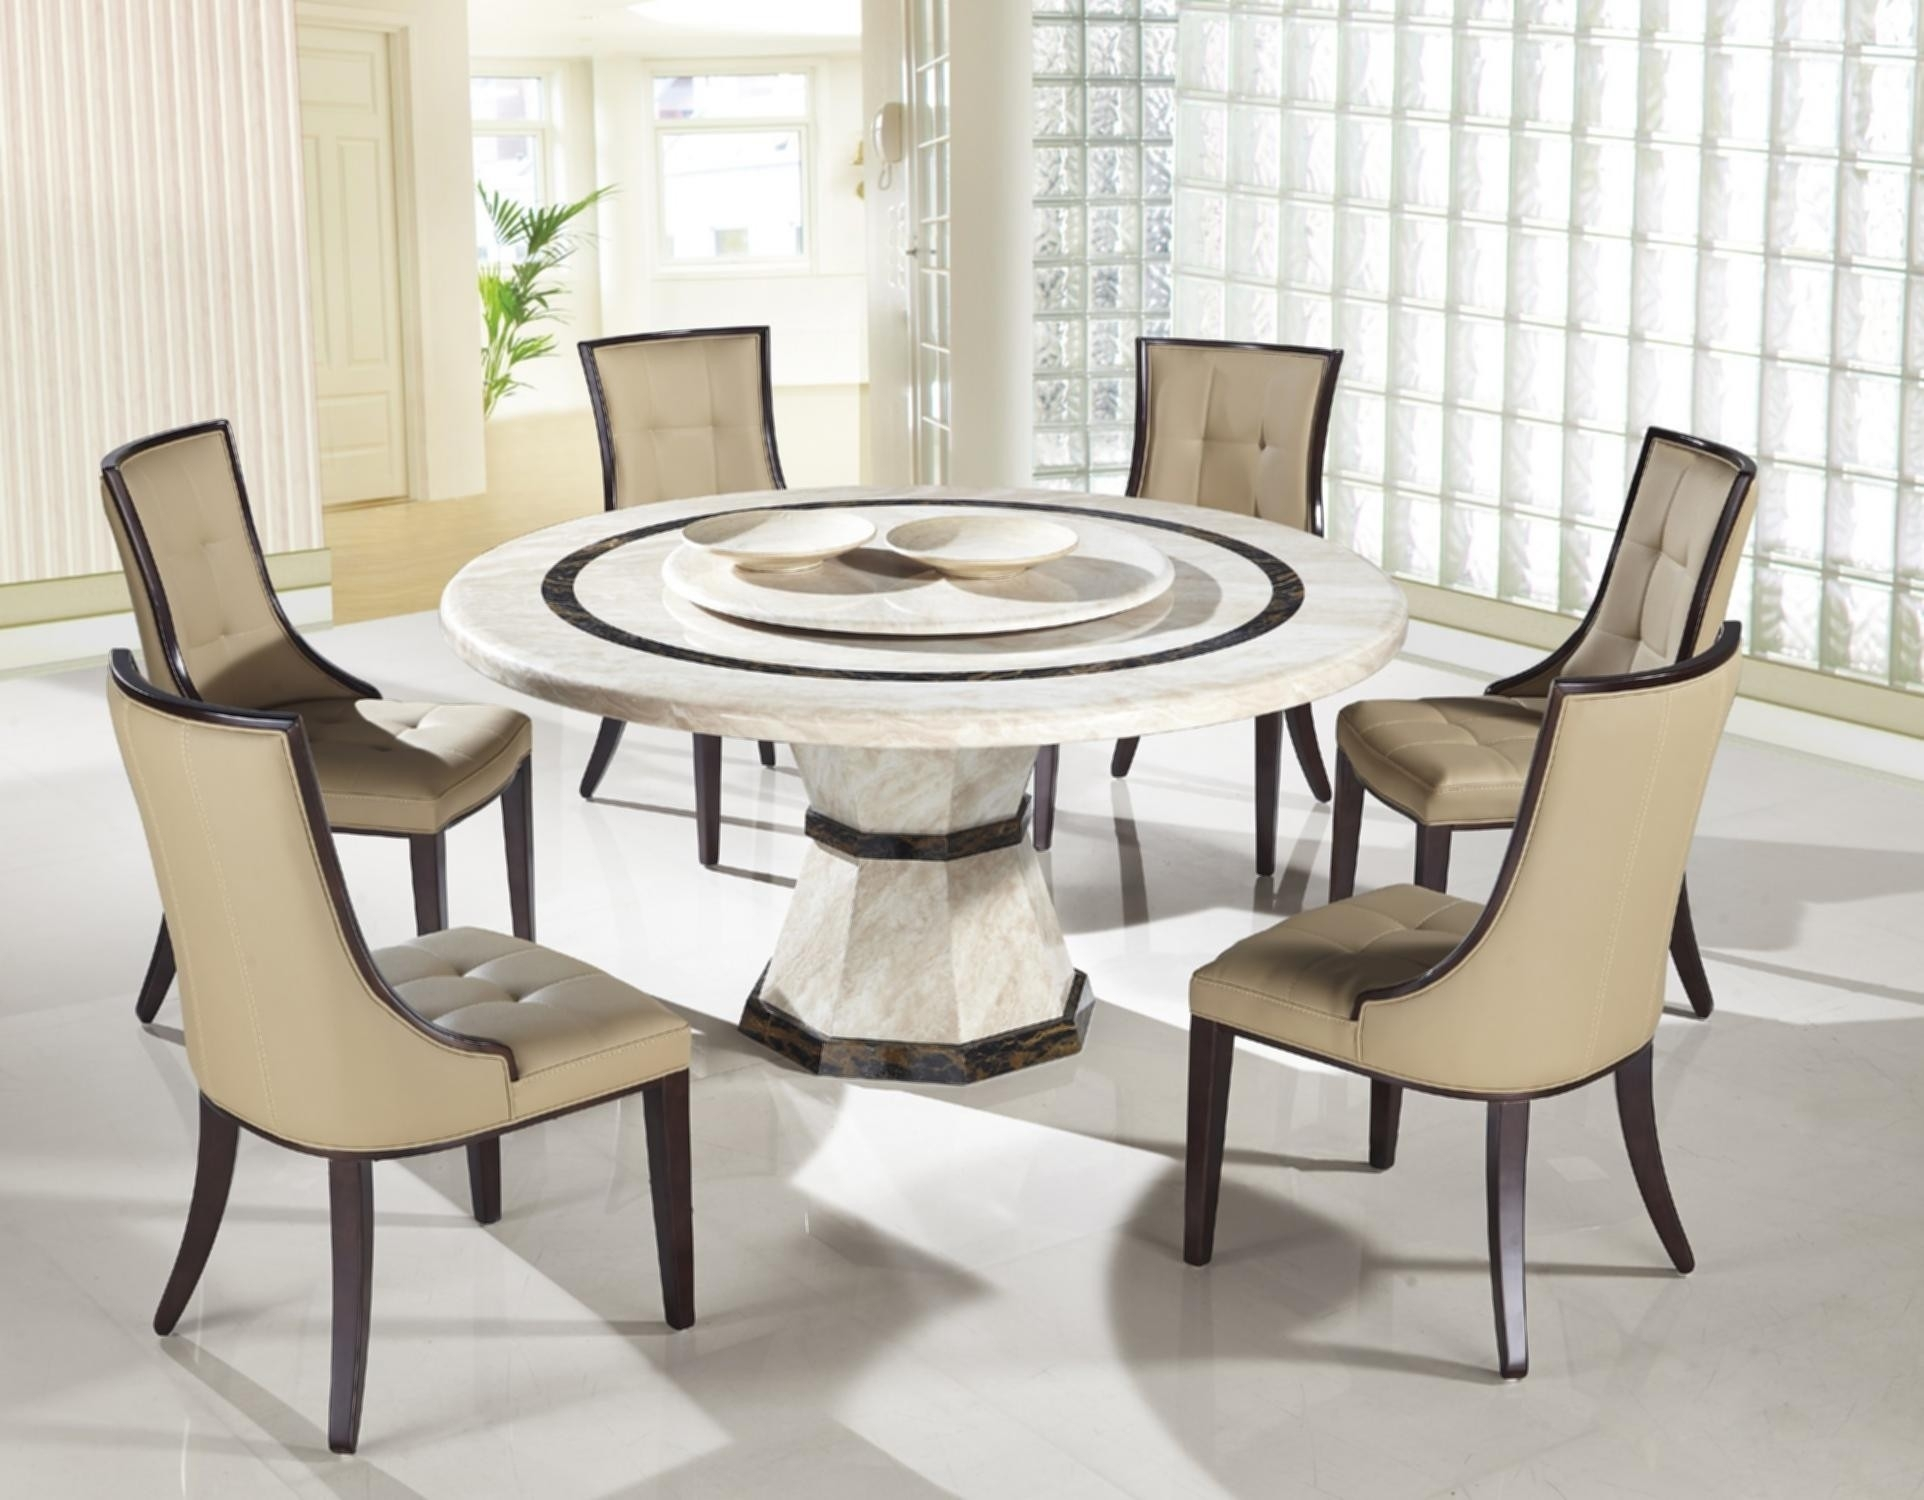 Bristol Dining Table New Luxury Contemporary Tables And 22 Modern For 2017 Magnolia Home English Country Oval Dining Tables (Image 4 of 20)